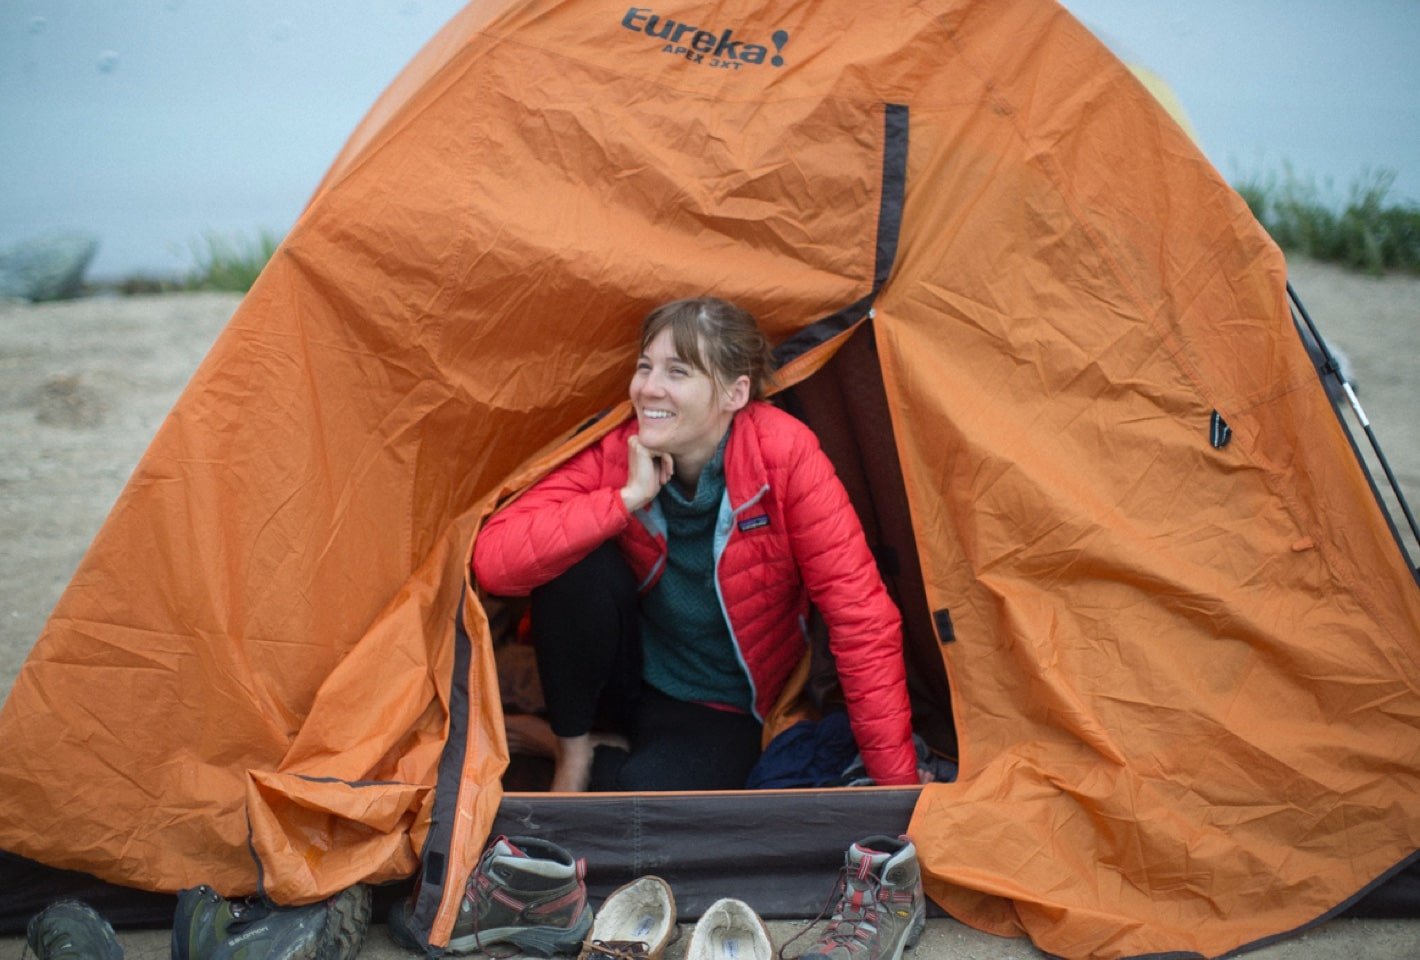 Raphye hanging out in the tent